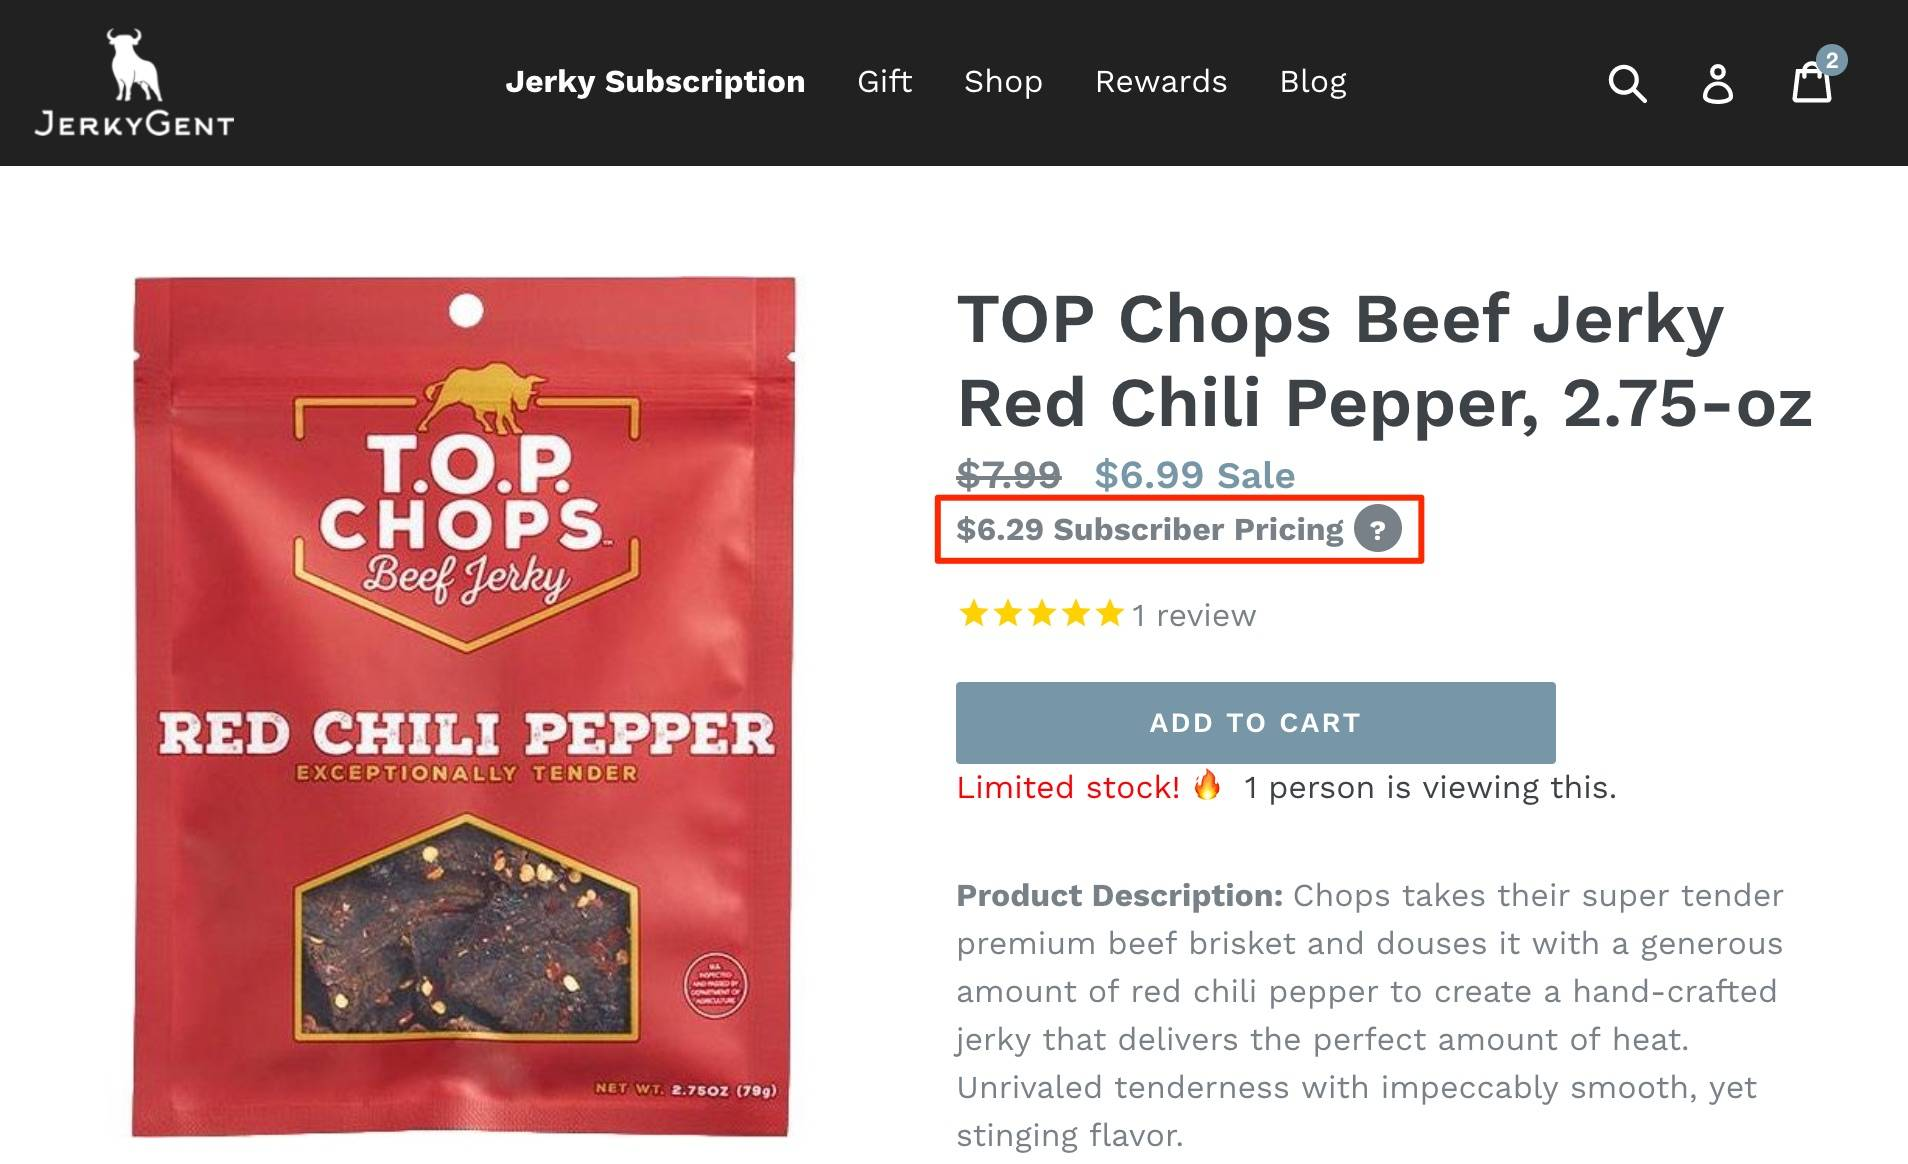 JerkyGent Subscriber Pricing - Discounts For Beef Jerky Of The Month Club Members